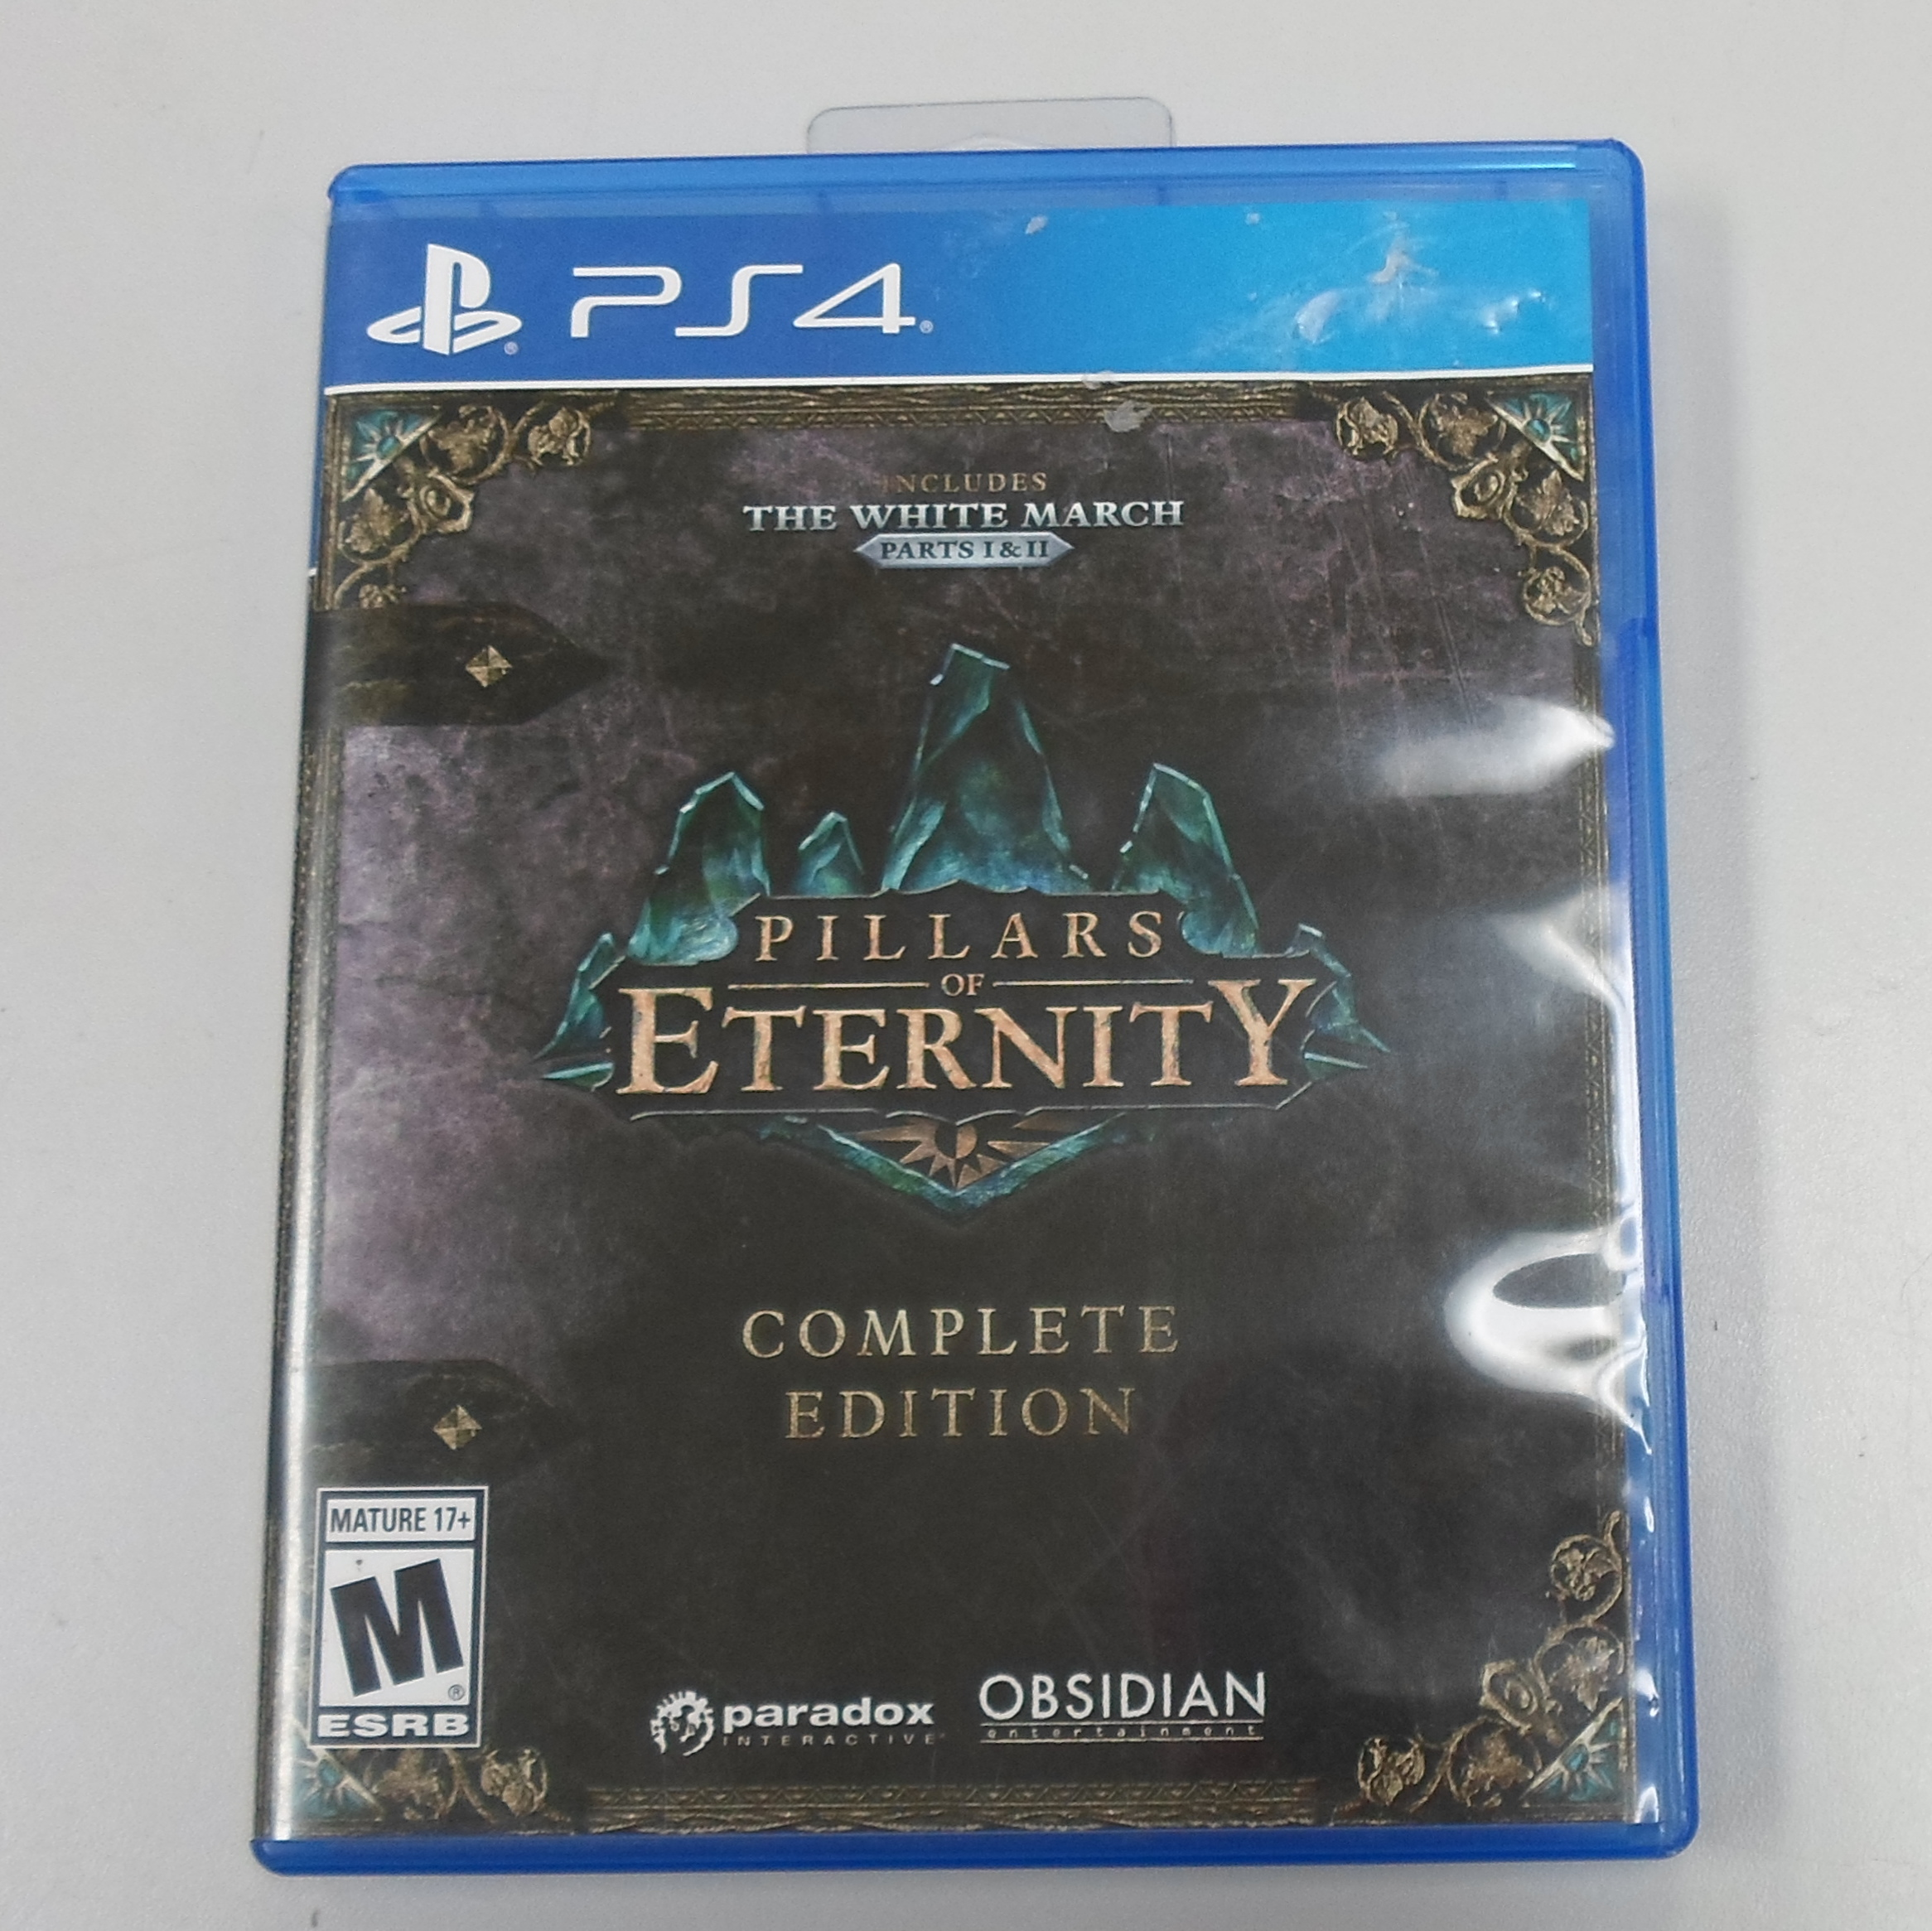 PILLARS OF ETERNITY COMPLETE EDITION - PS4 GAME